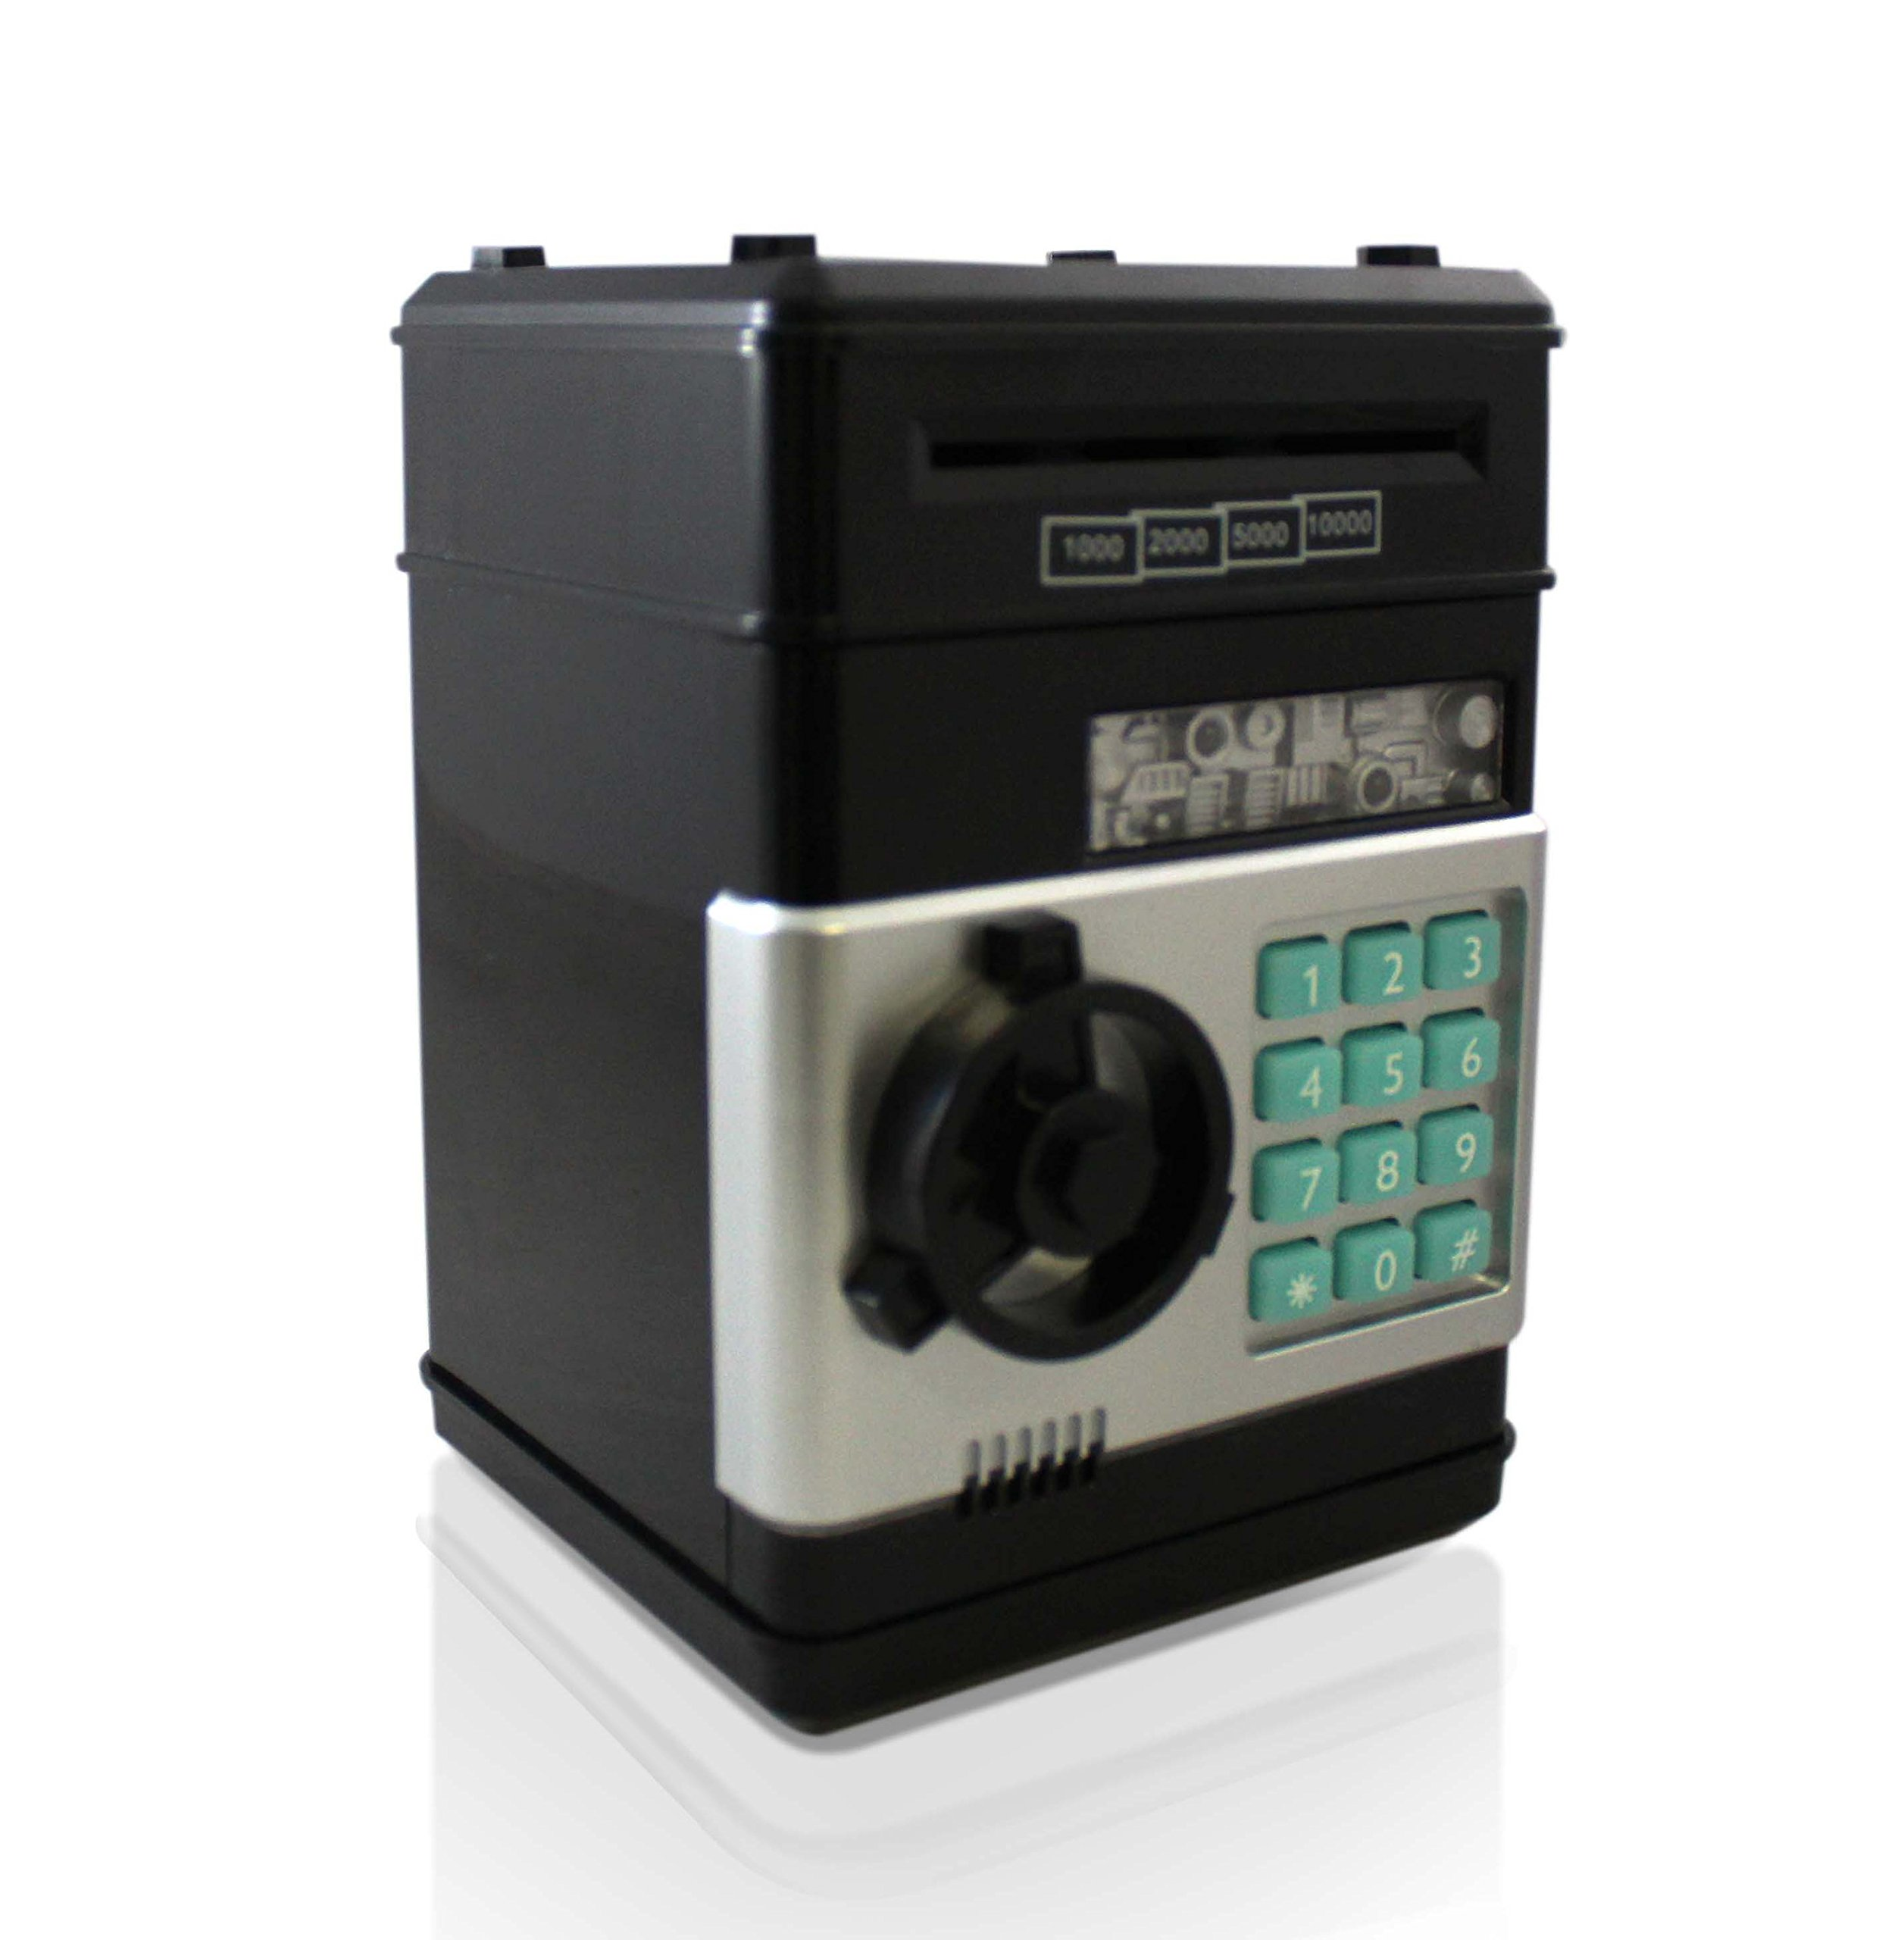 Black Grey Safe Coin Bank For Kids - Authentic ATM Money Saver Keeps Cash, Toys, and Jewelry Safe Inside - Auto Insert Bills and Electronic Password - Cool Piggy Bank Makes A Great Birthday Gift